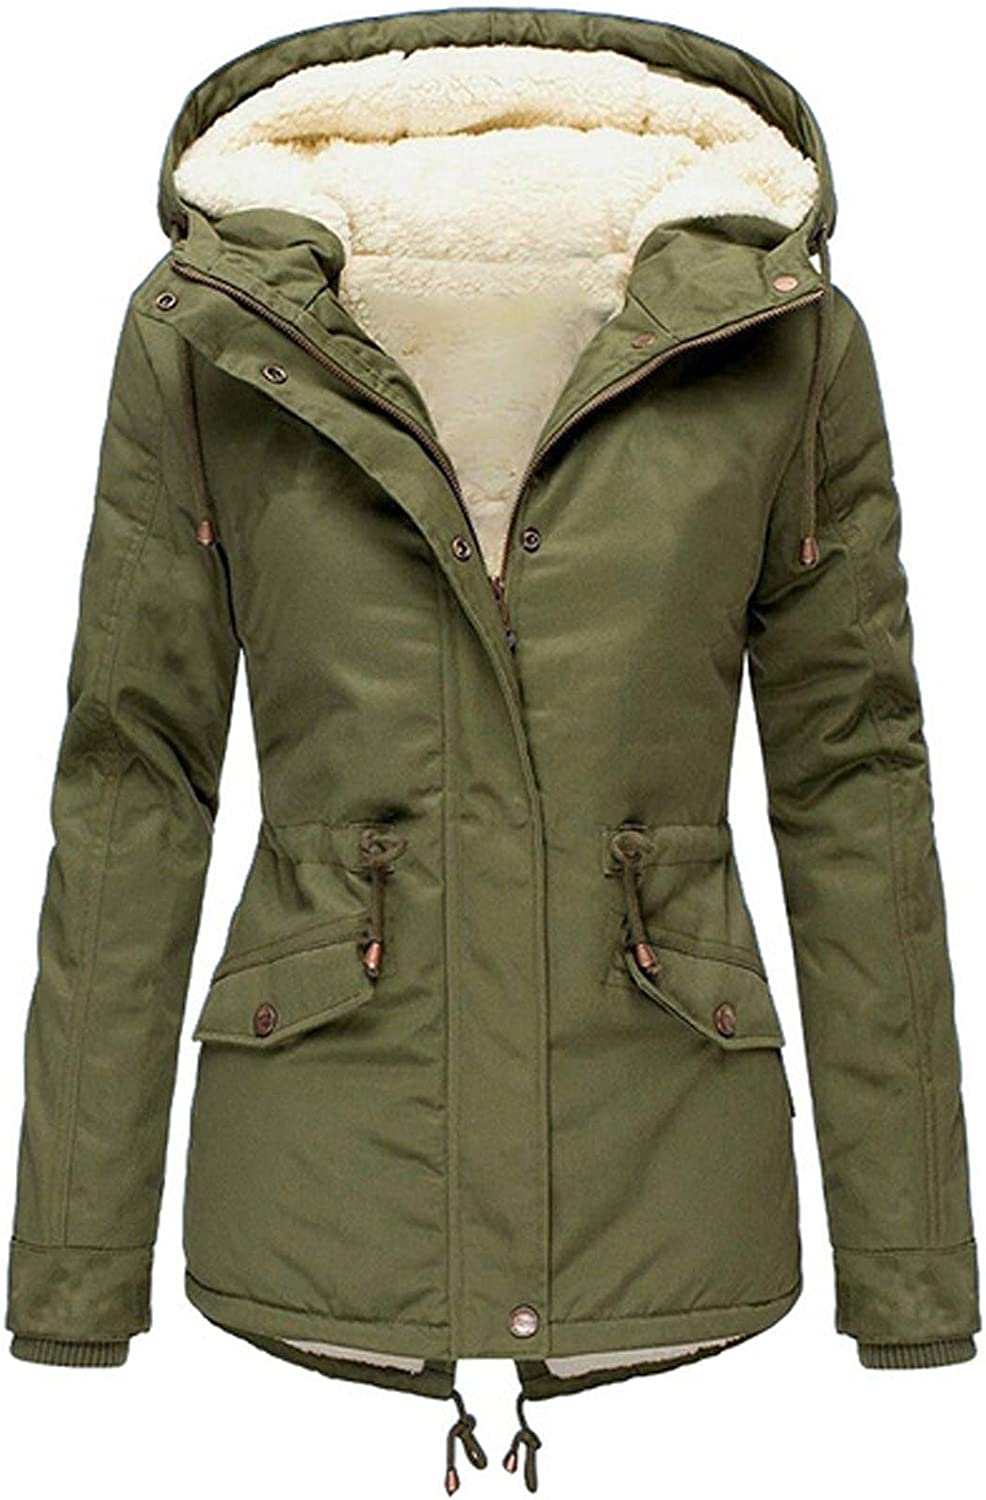 UOFOCO Winter Jackets for Women Hooded Thickened Fleece Line Coats Parkas Faux Fur Jacket with Pockets